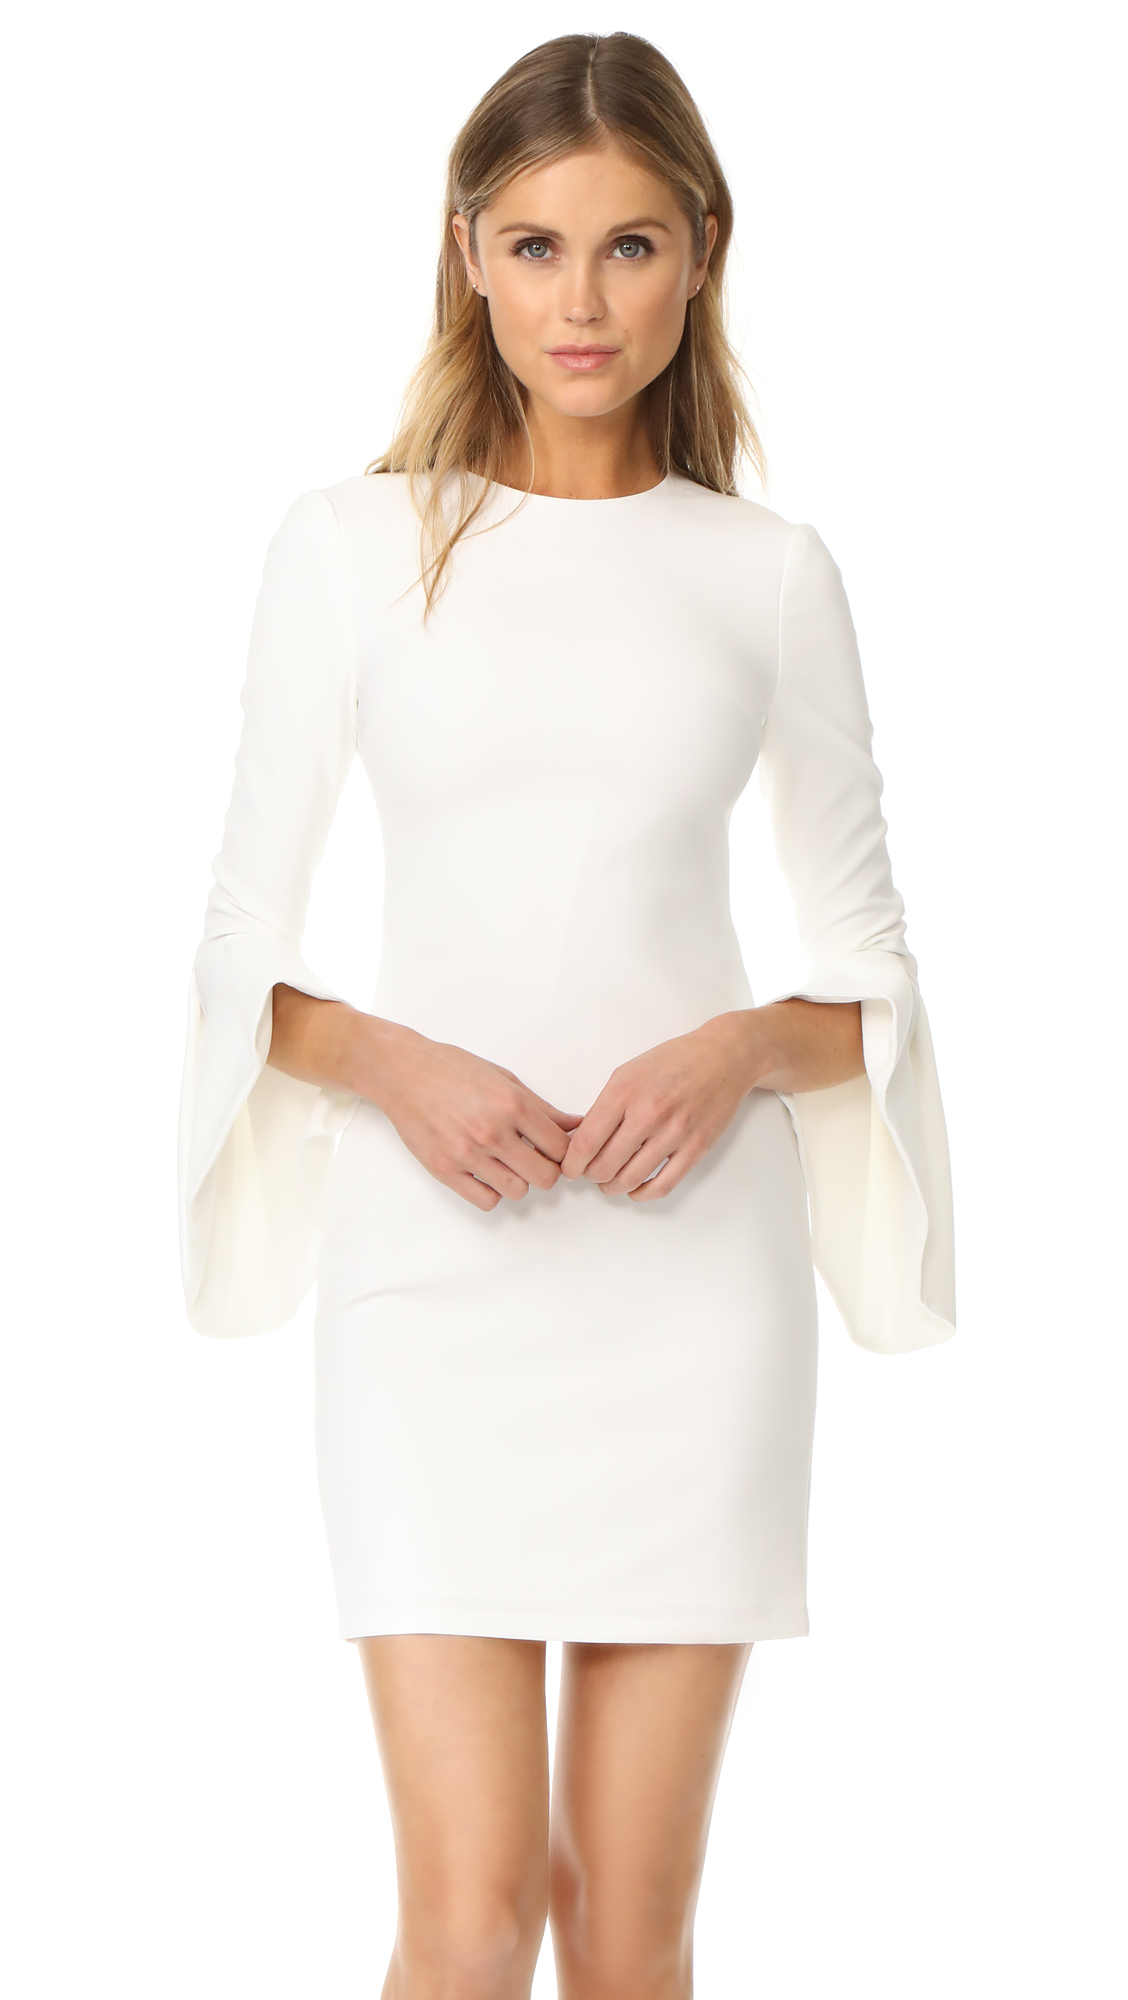 alice + olivia Dora Bell Sleeve Dress - Off White